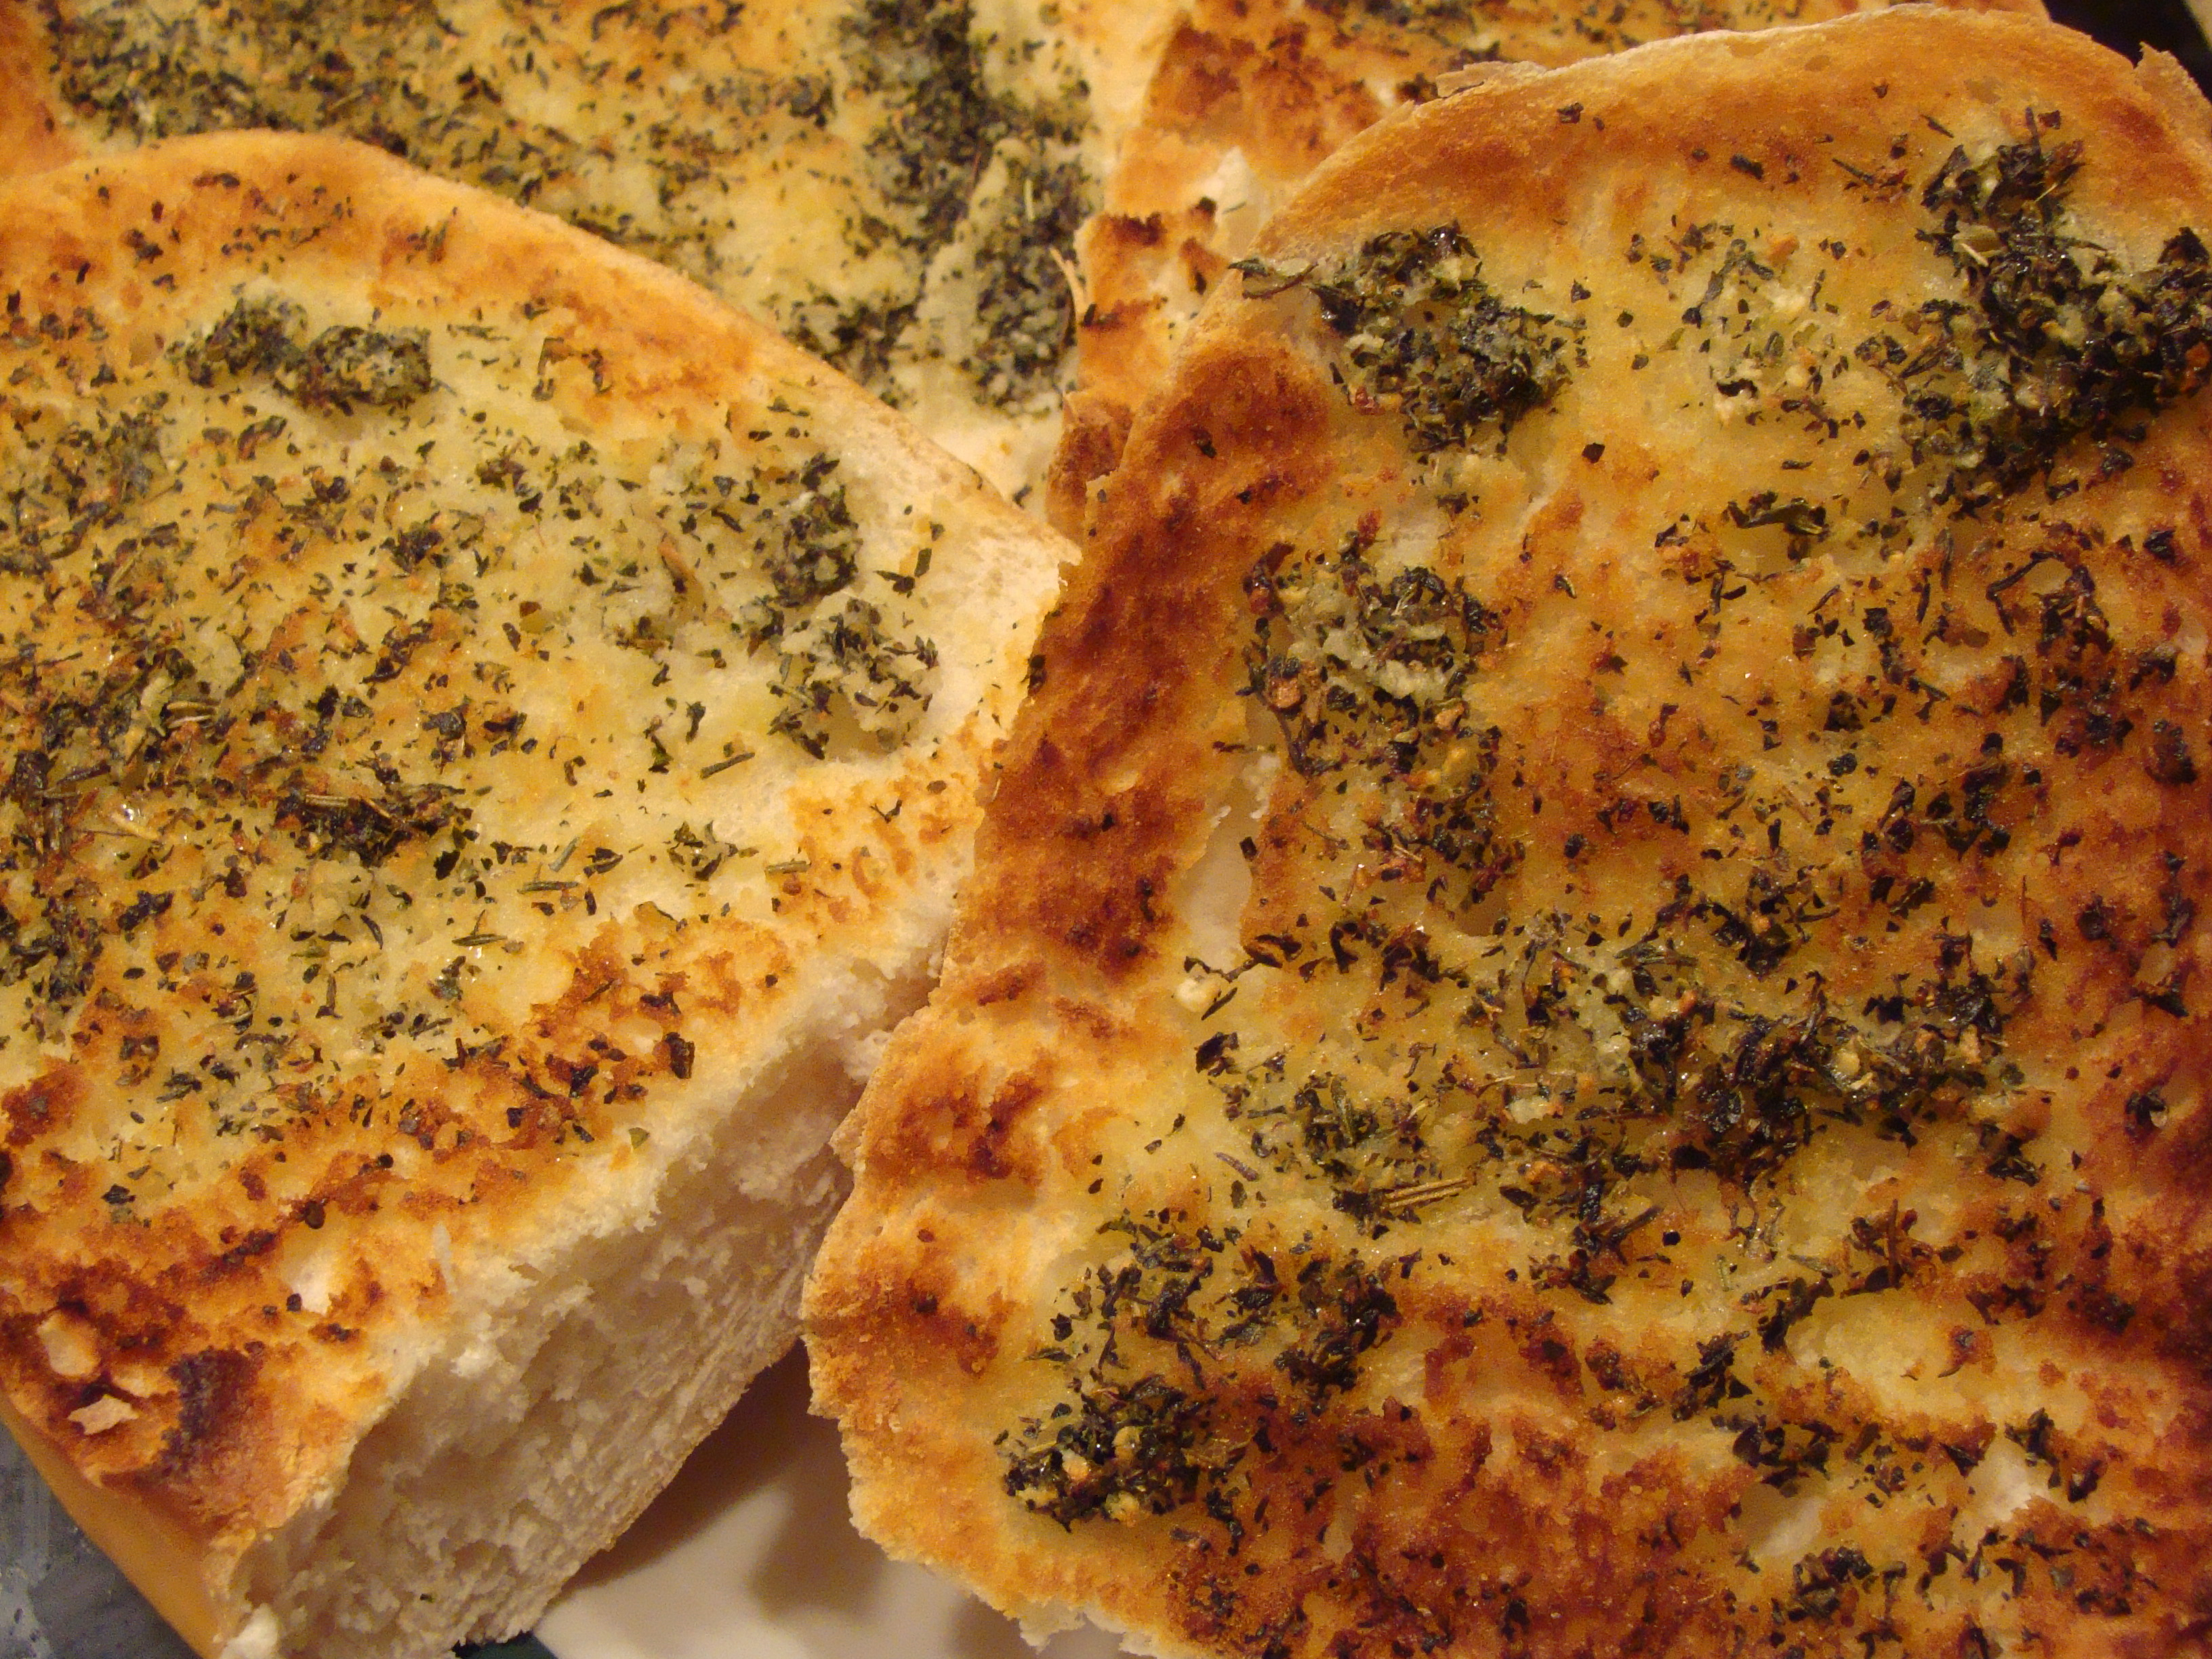 herbed-garlic-bread-and-monkey-bread-001